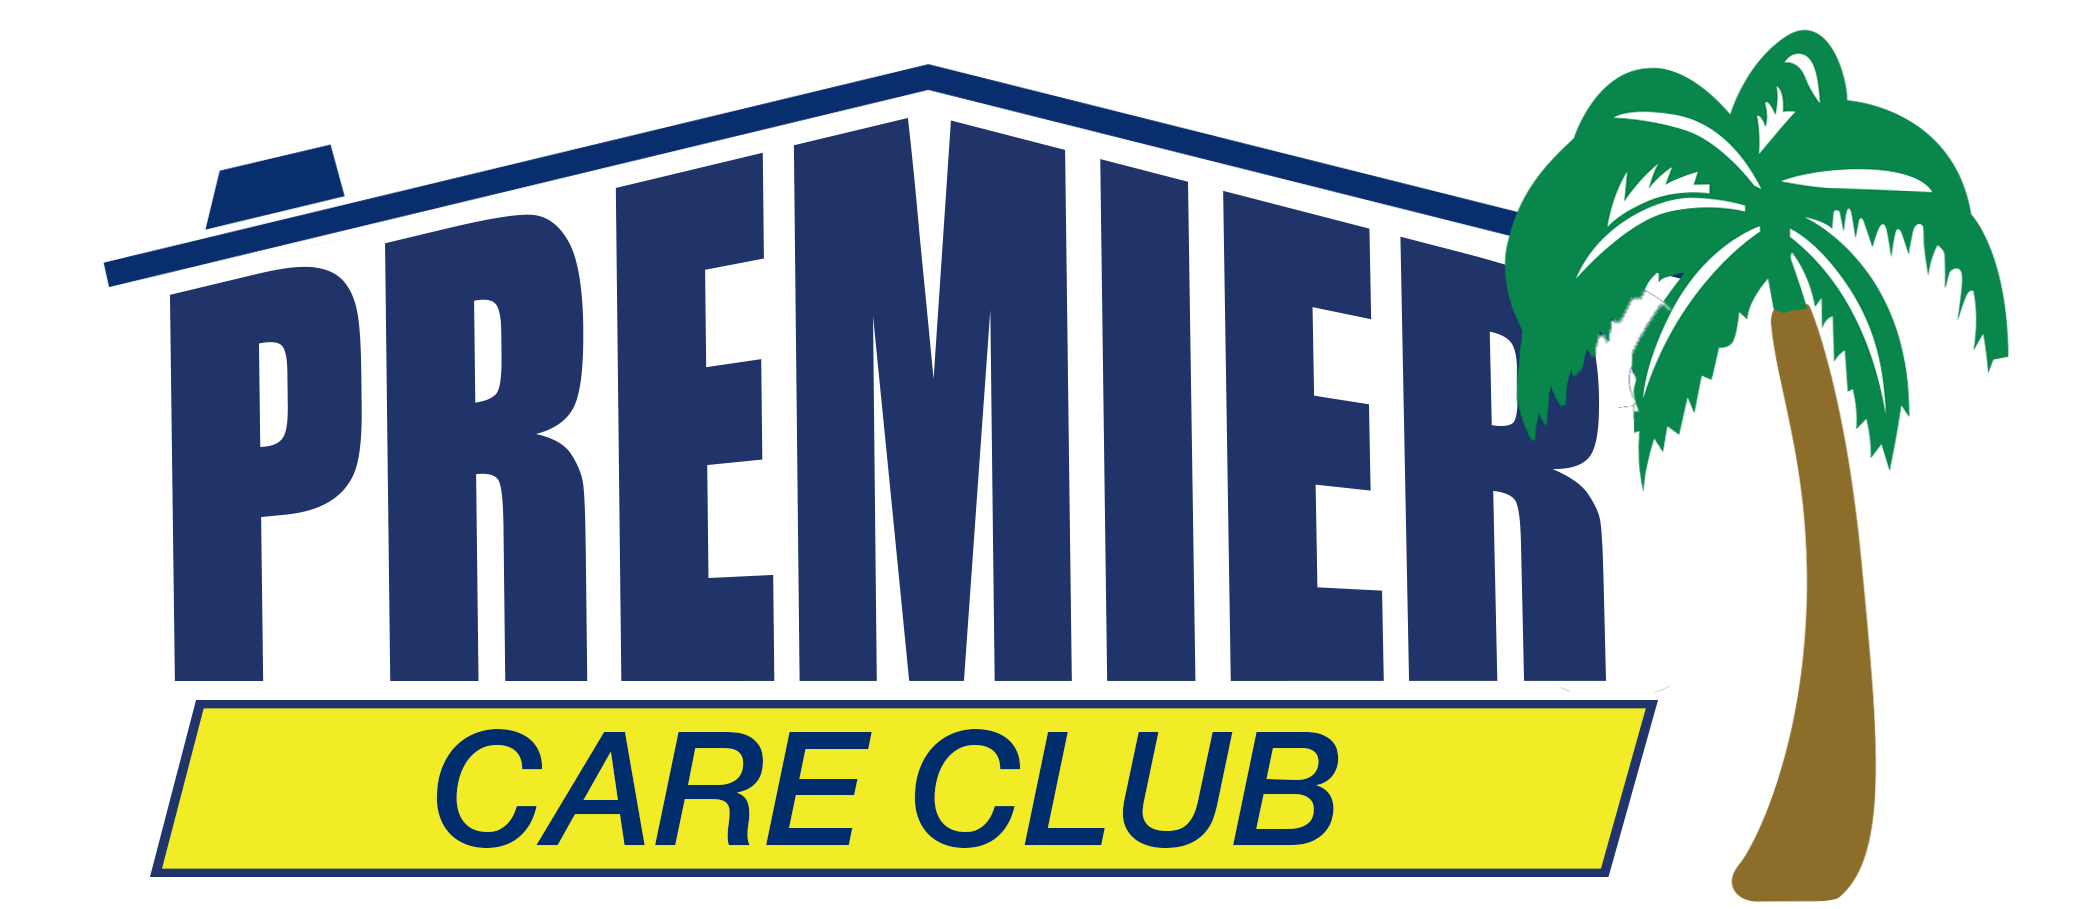 Premier Care Club - roof maintenance